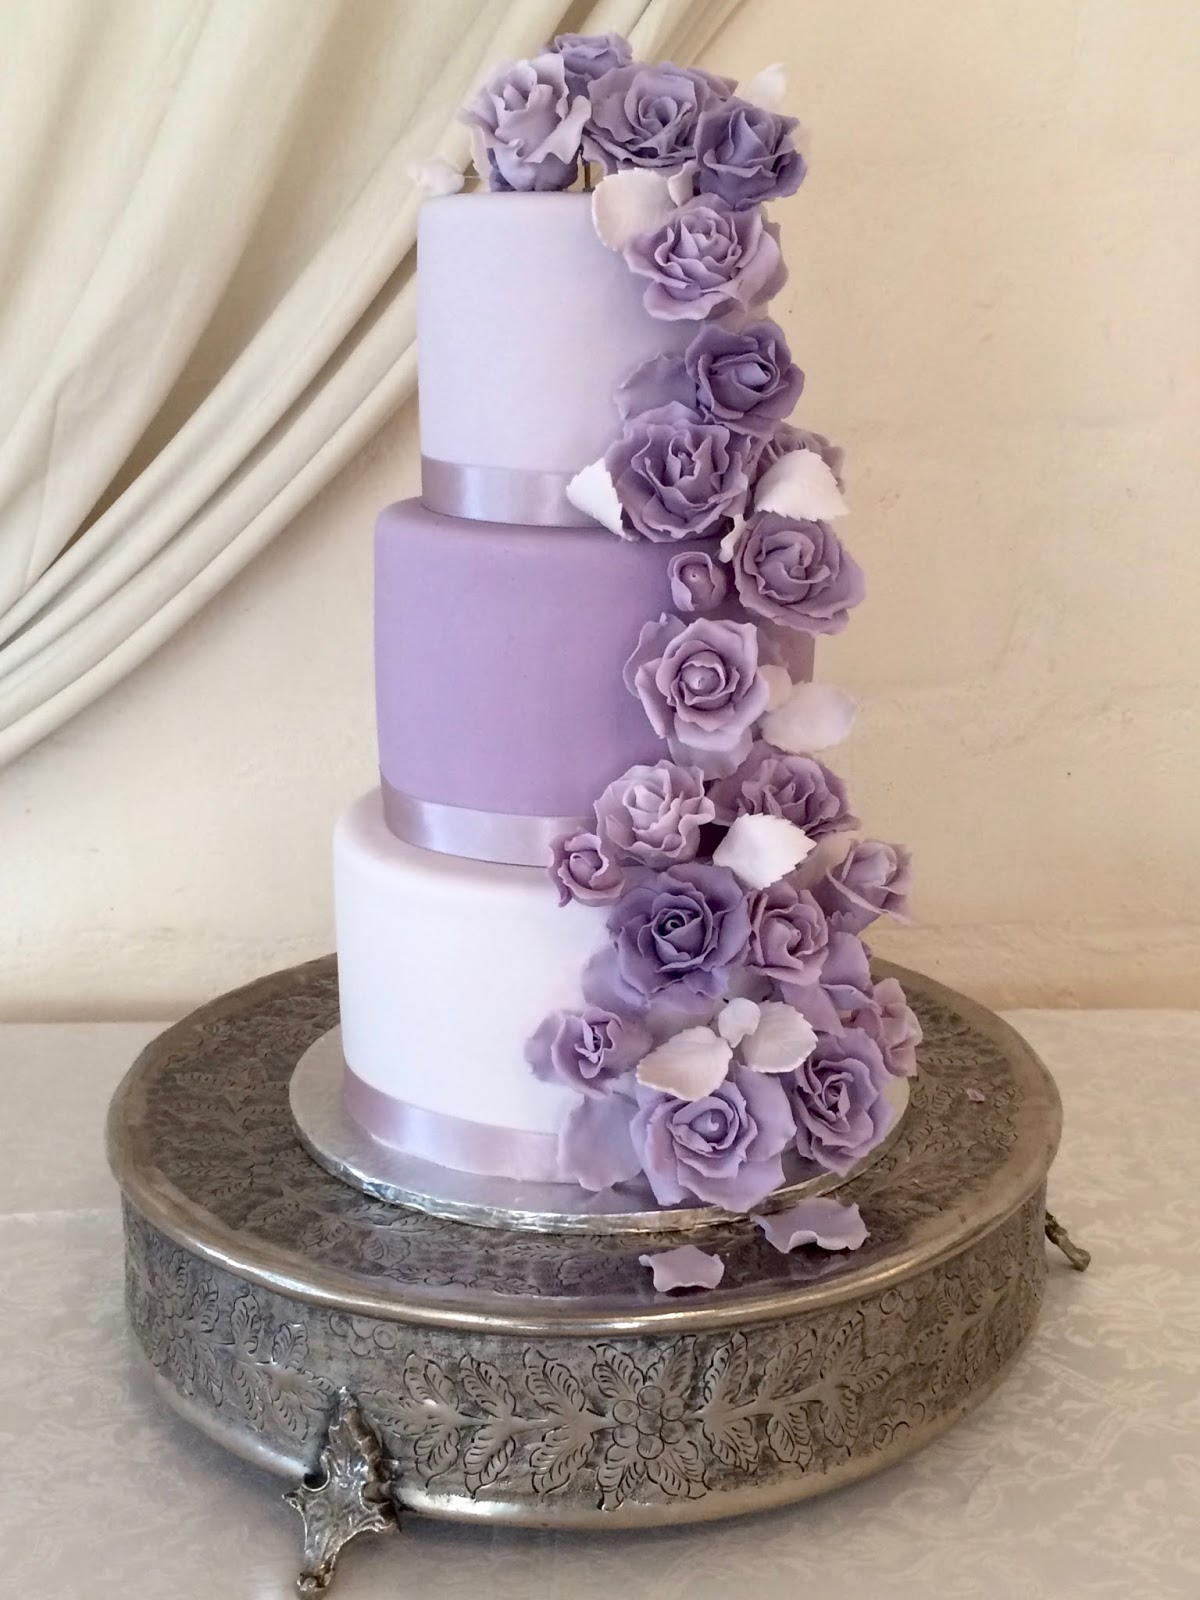 3 tier wedding cake with purple roses rozanne s cakes white and purple wedding cake 10348